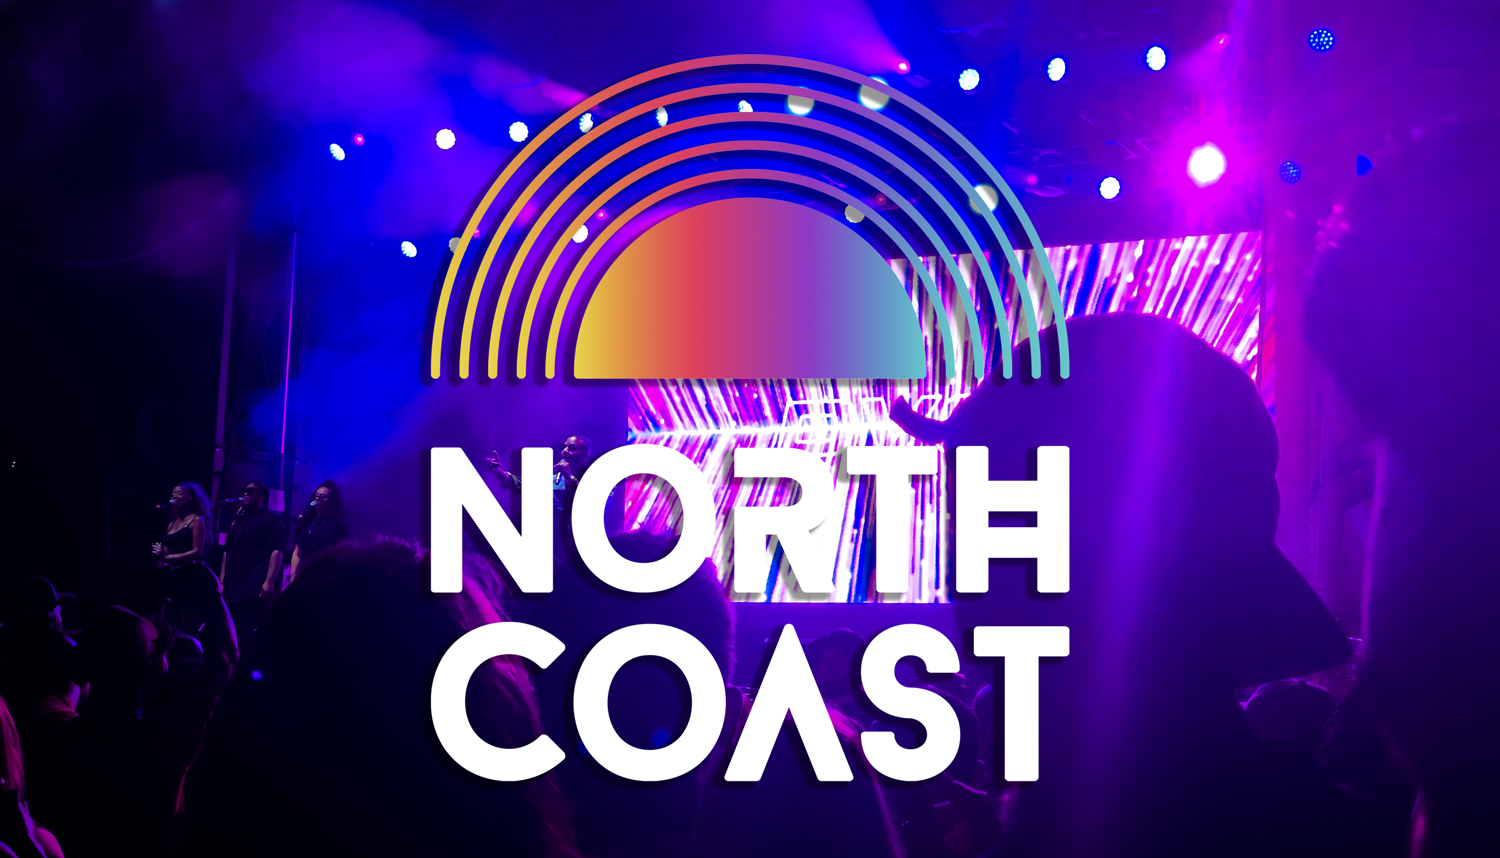 North Coast at Northerly Island will take place August 30th and August 31st, 2019 at Huntington Bank Pavilion at Northerly Island, located on the lakefront in downtown Chicago on Museum Campus and adjacent to Soldier Field.